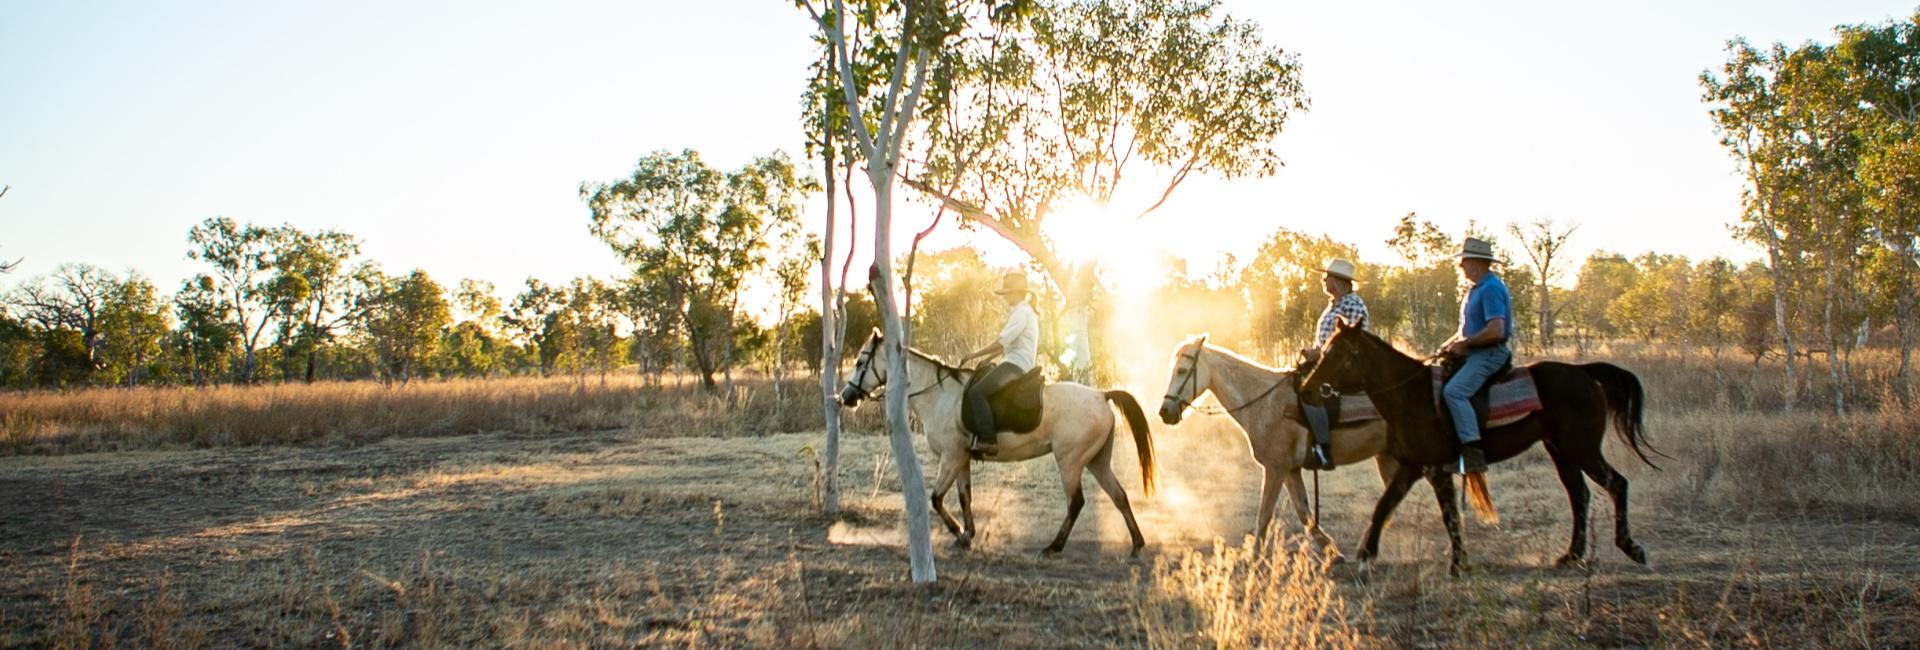 Horse Riding on a Gibb River Road Station Stay in the Kimberley region of Western Australia. Image: ANW